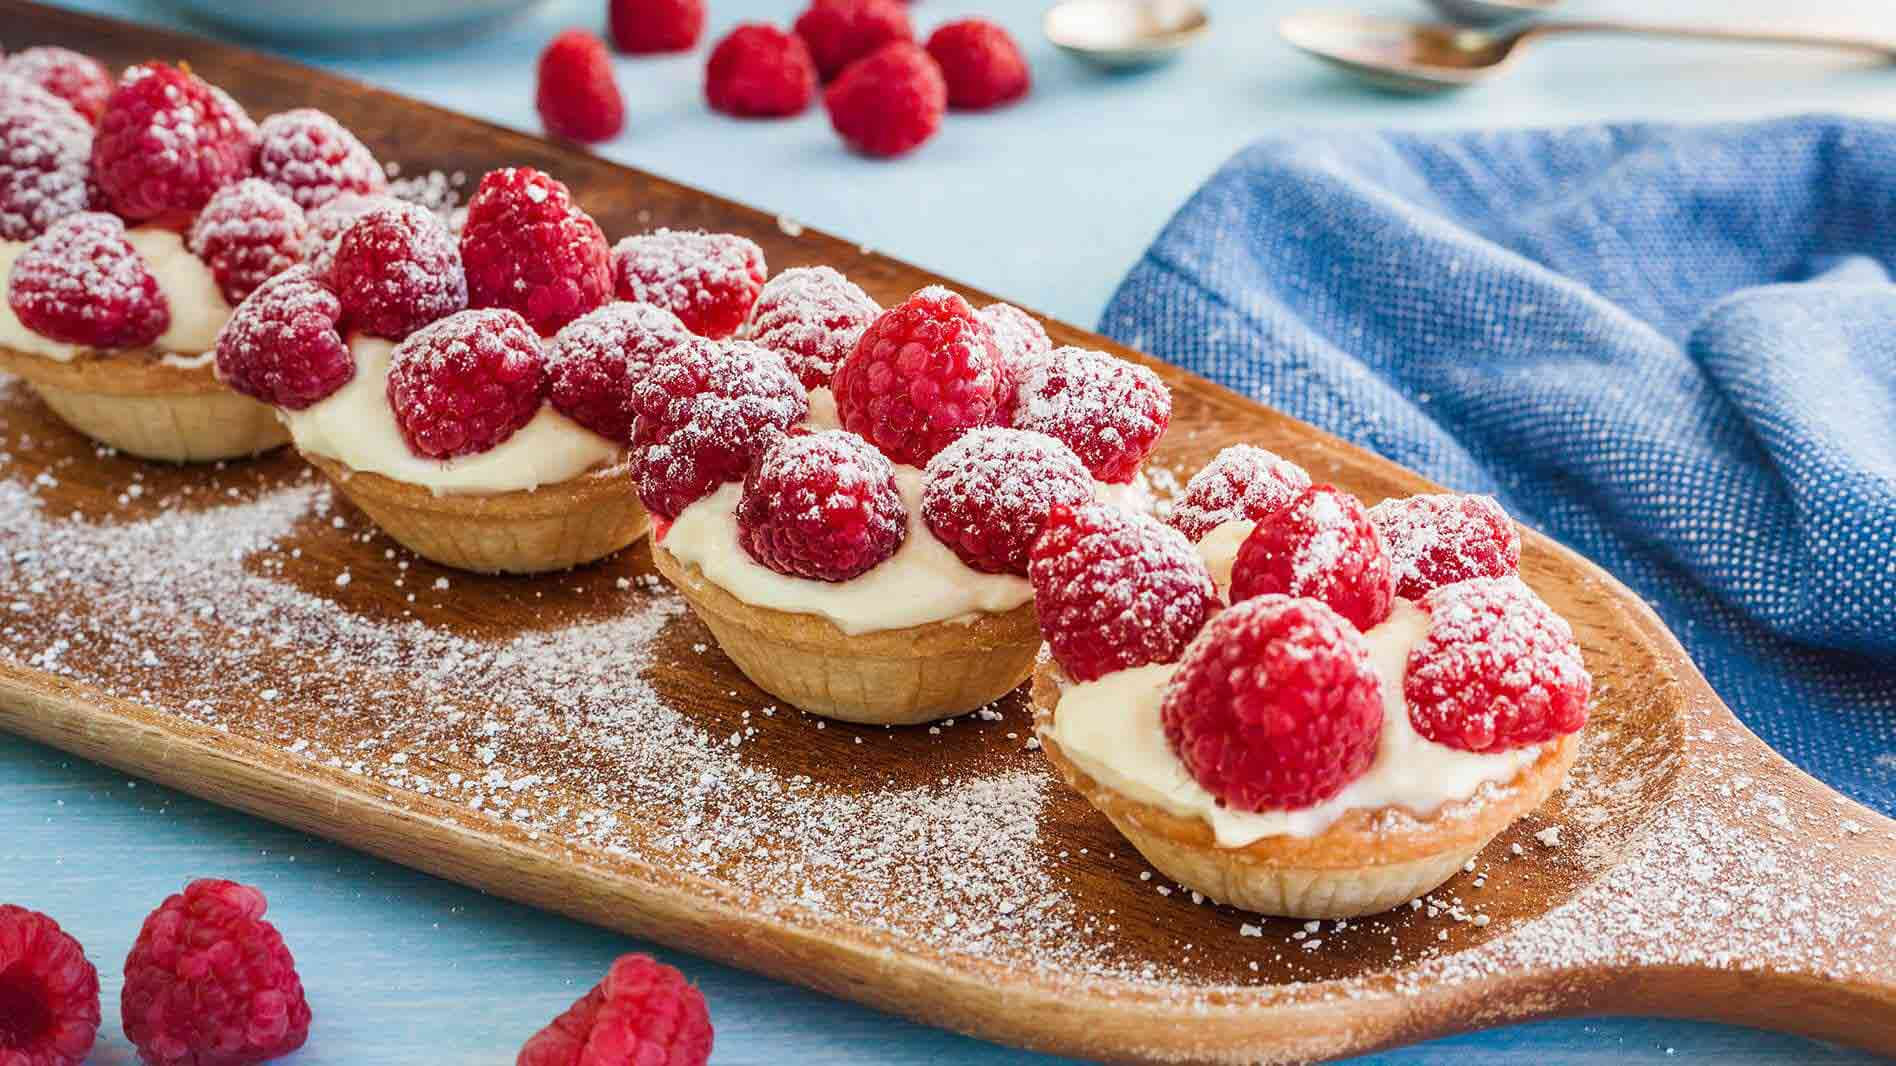 Raspberry, Mascarpone, Grappa and White Chocolate Tartlets